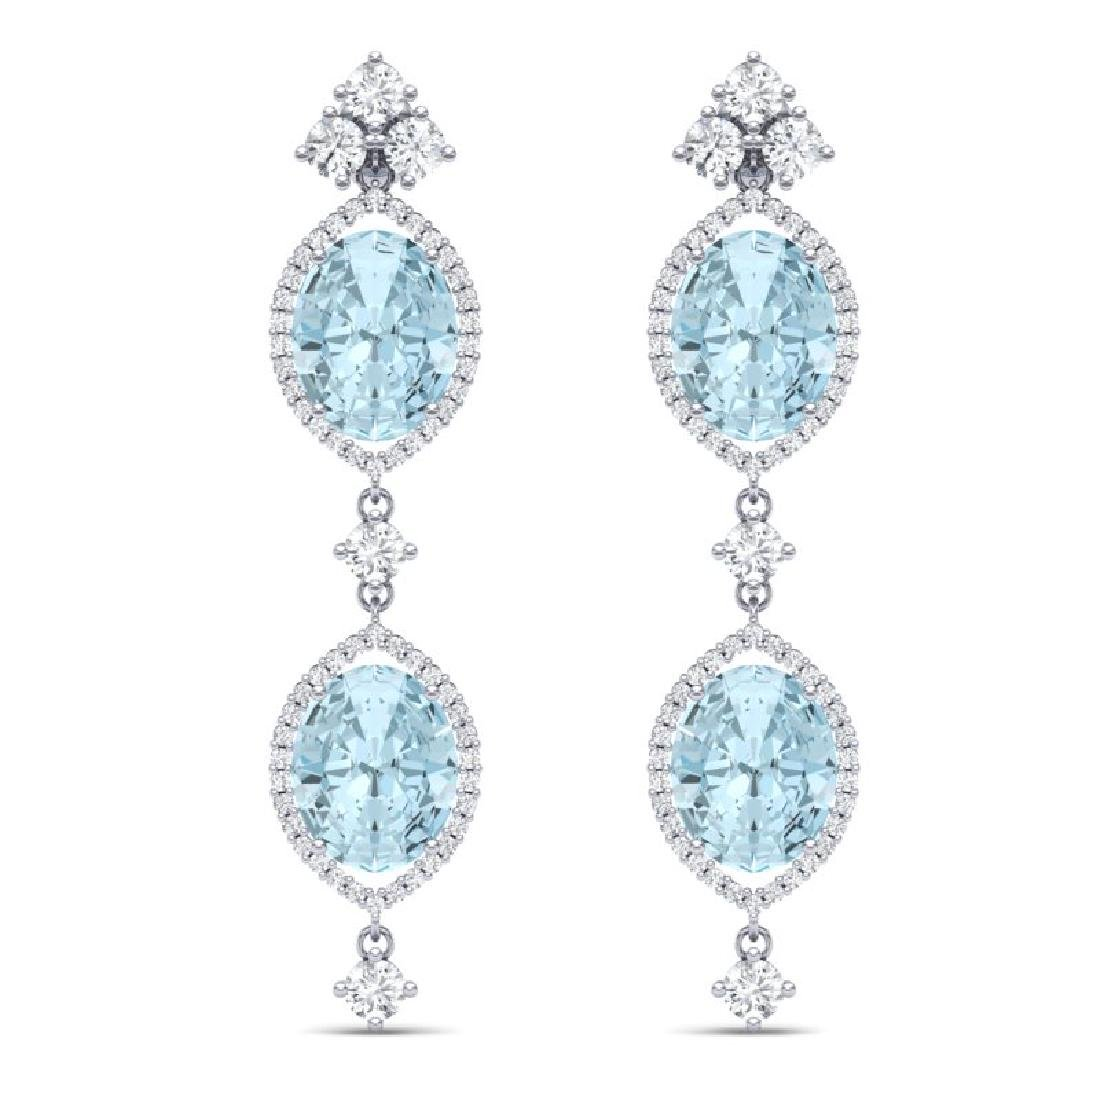 16.41 CTW Royalty Sky Topaz & VS Diamond Earrings 18K